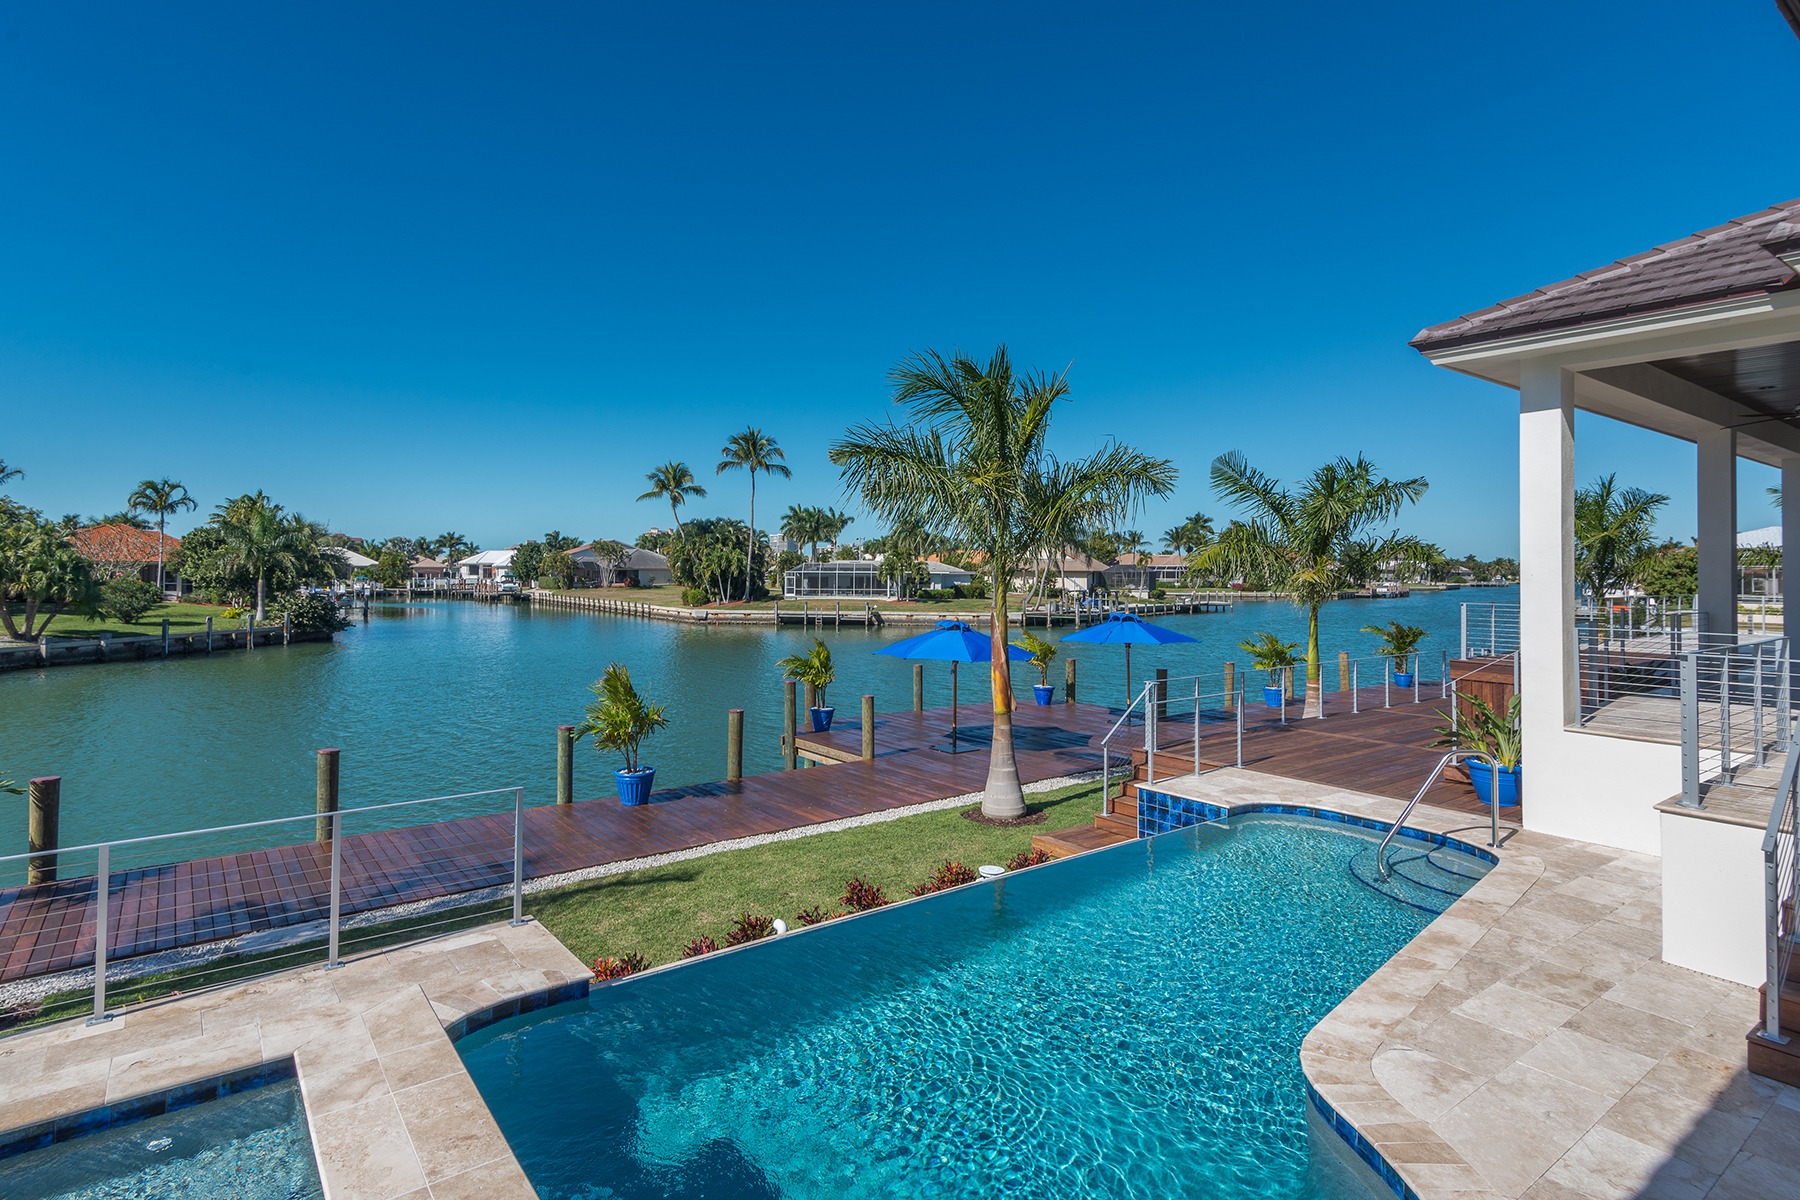 Single Family Home for Sale at MARCO ISLAND - ARUBA COURT 1250 Aruba Ct Marco Island, Florida 34145 United States